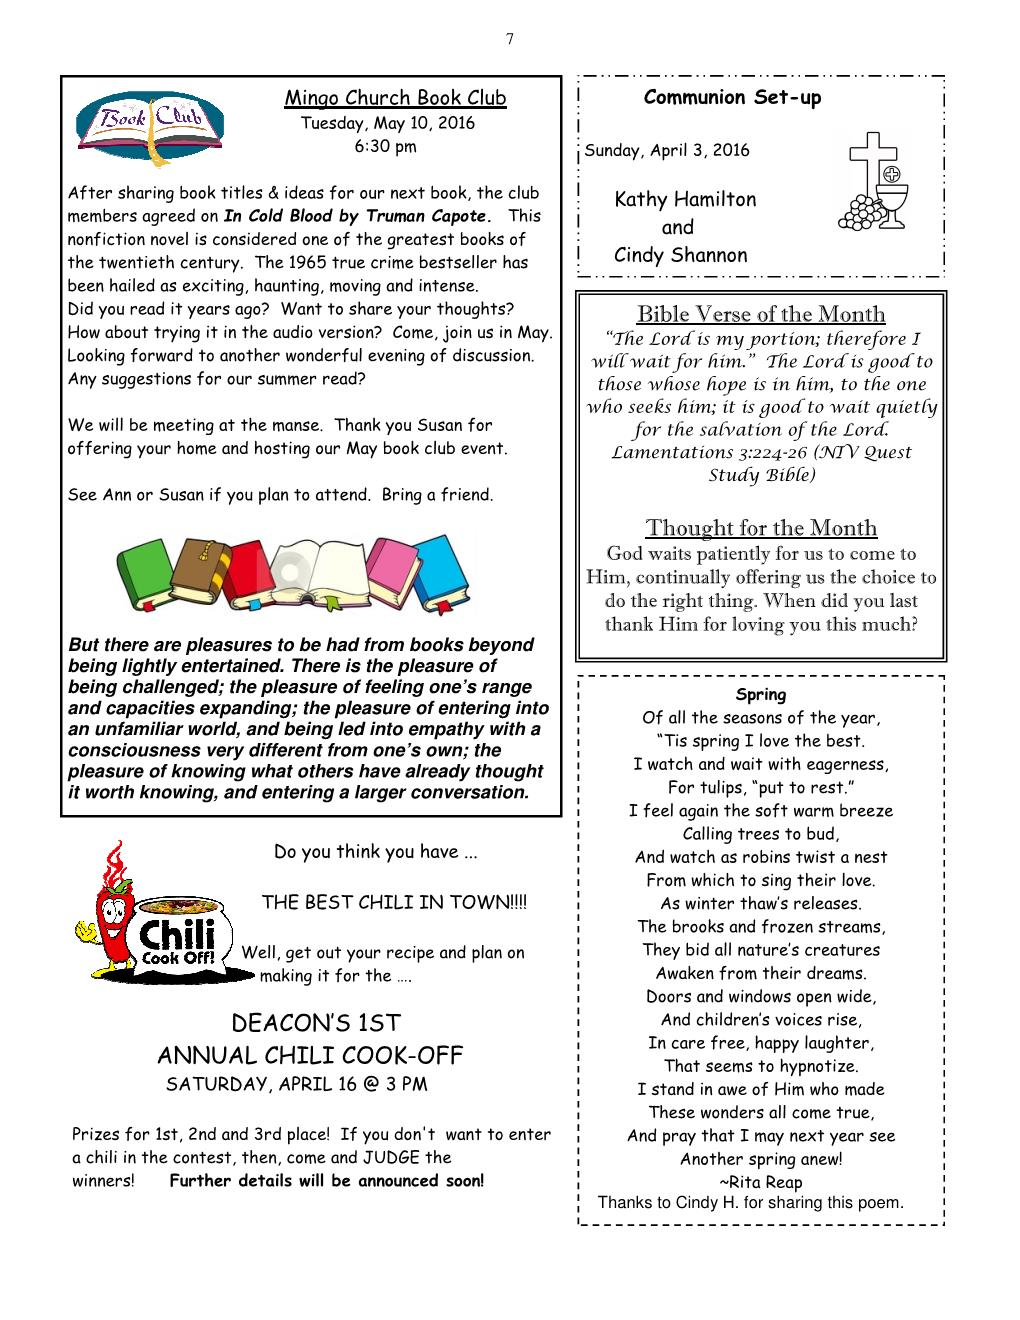 APRIL NEWSLETTER Page 007.jpg